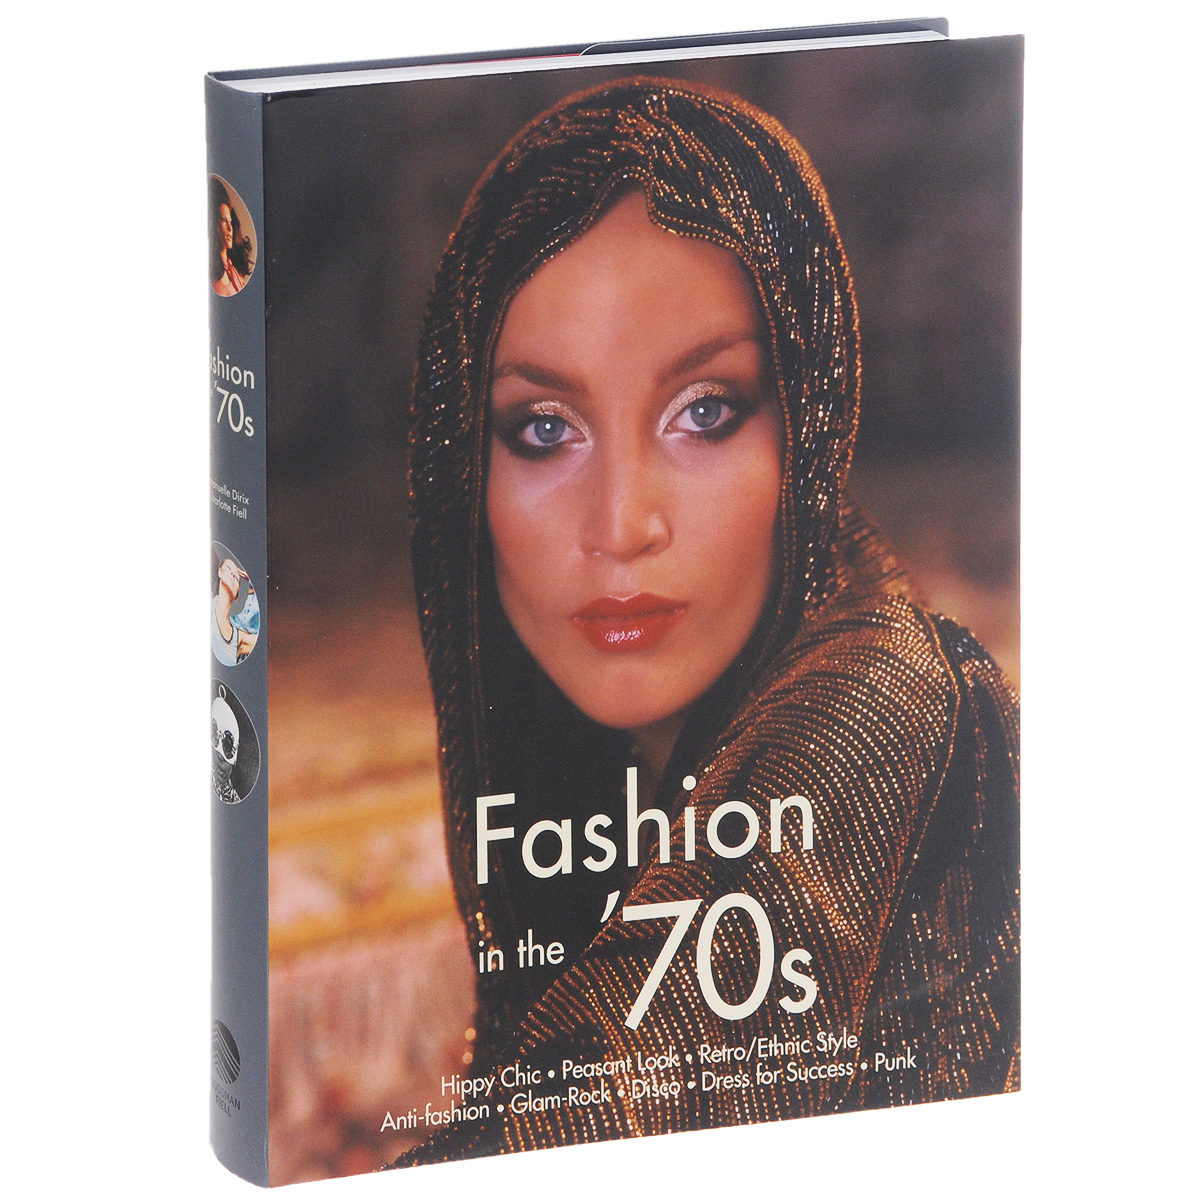 Fashion in the '70s: The Definitive Sourcebook joseph sociology for everyone non–net